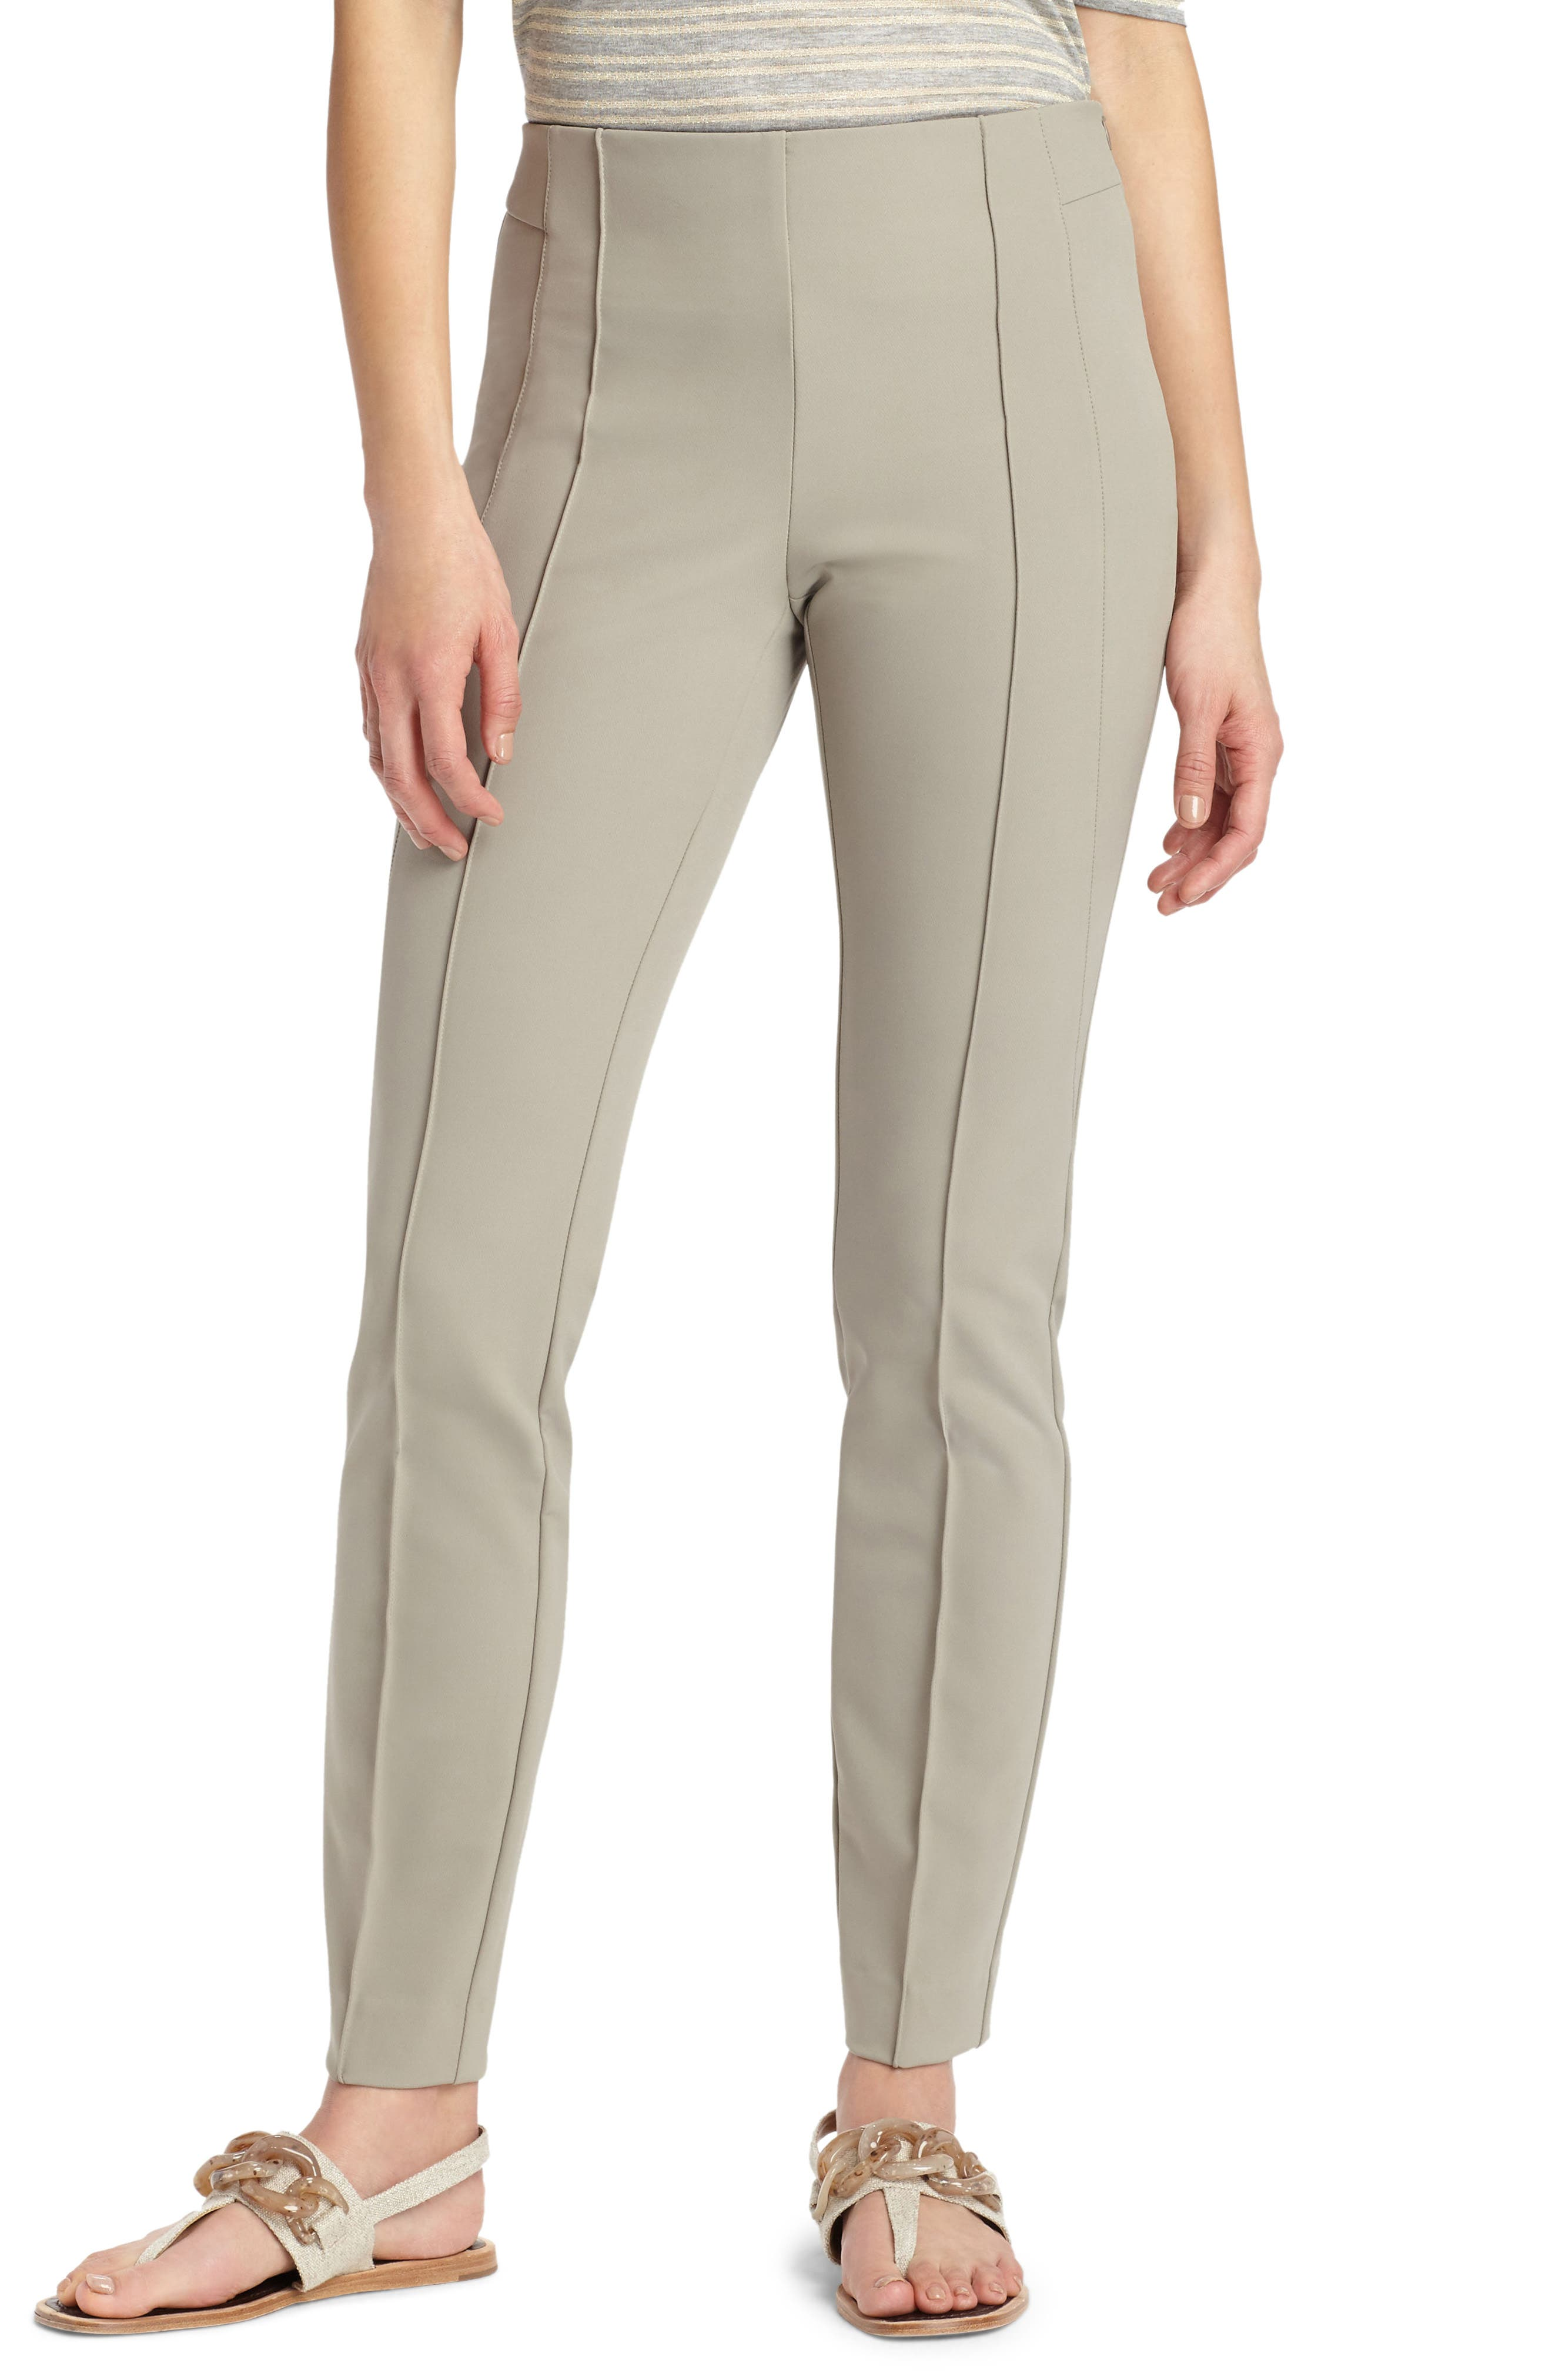 'Gramercy' Acclaimed Stretch Pants,                             Main thumbnail 1, color,                             PARTRIDGE